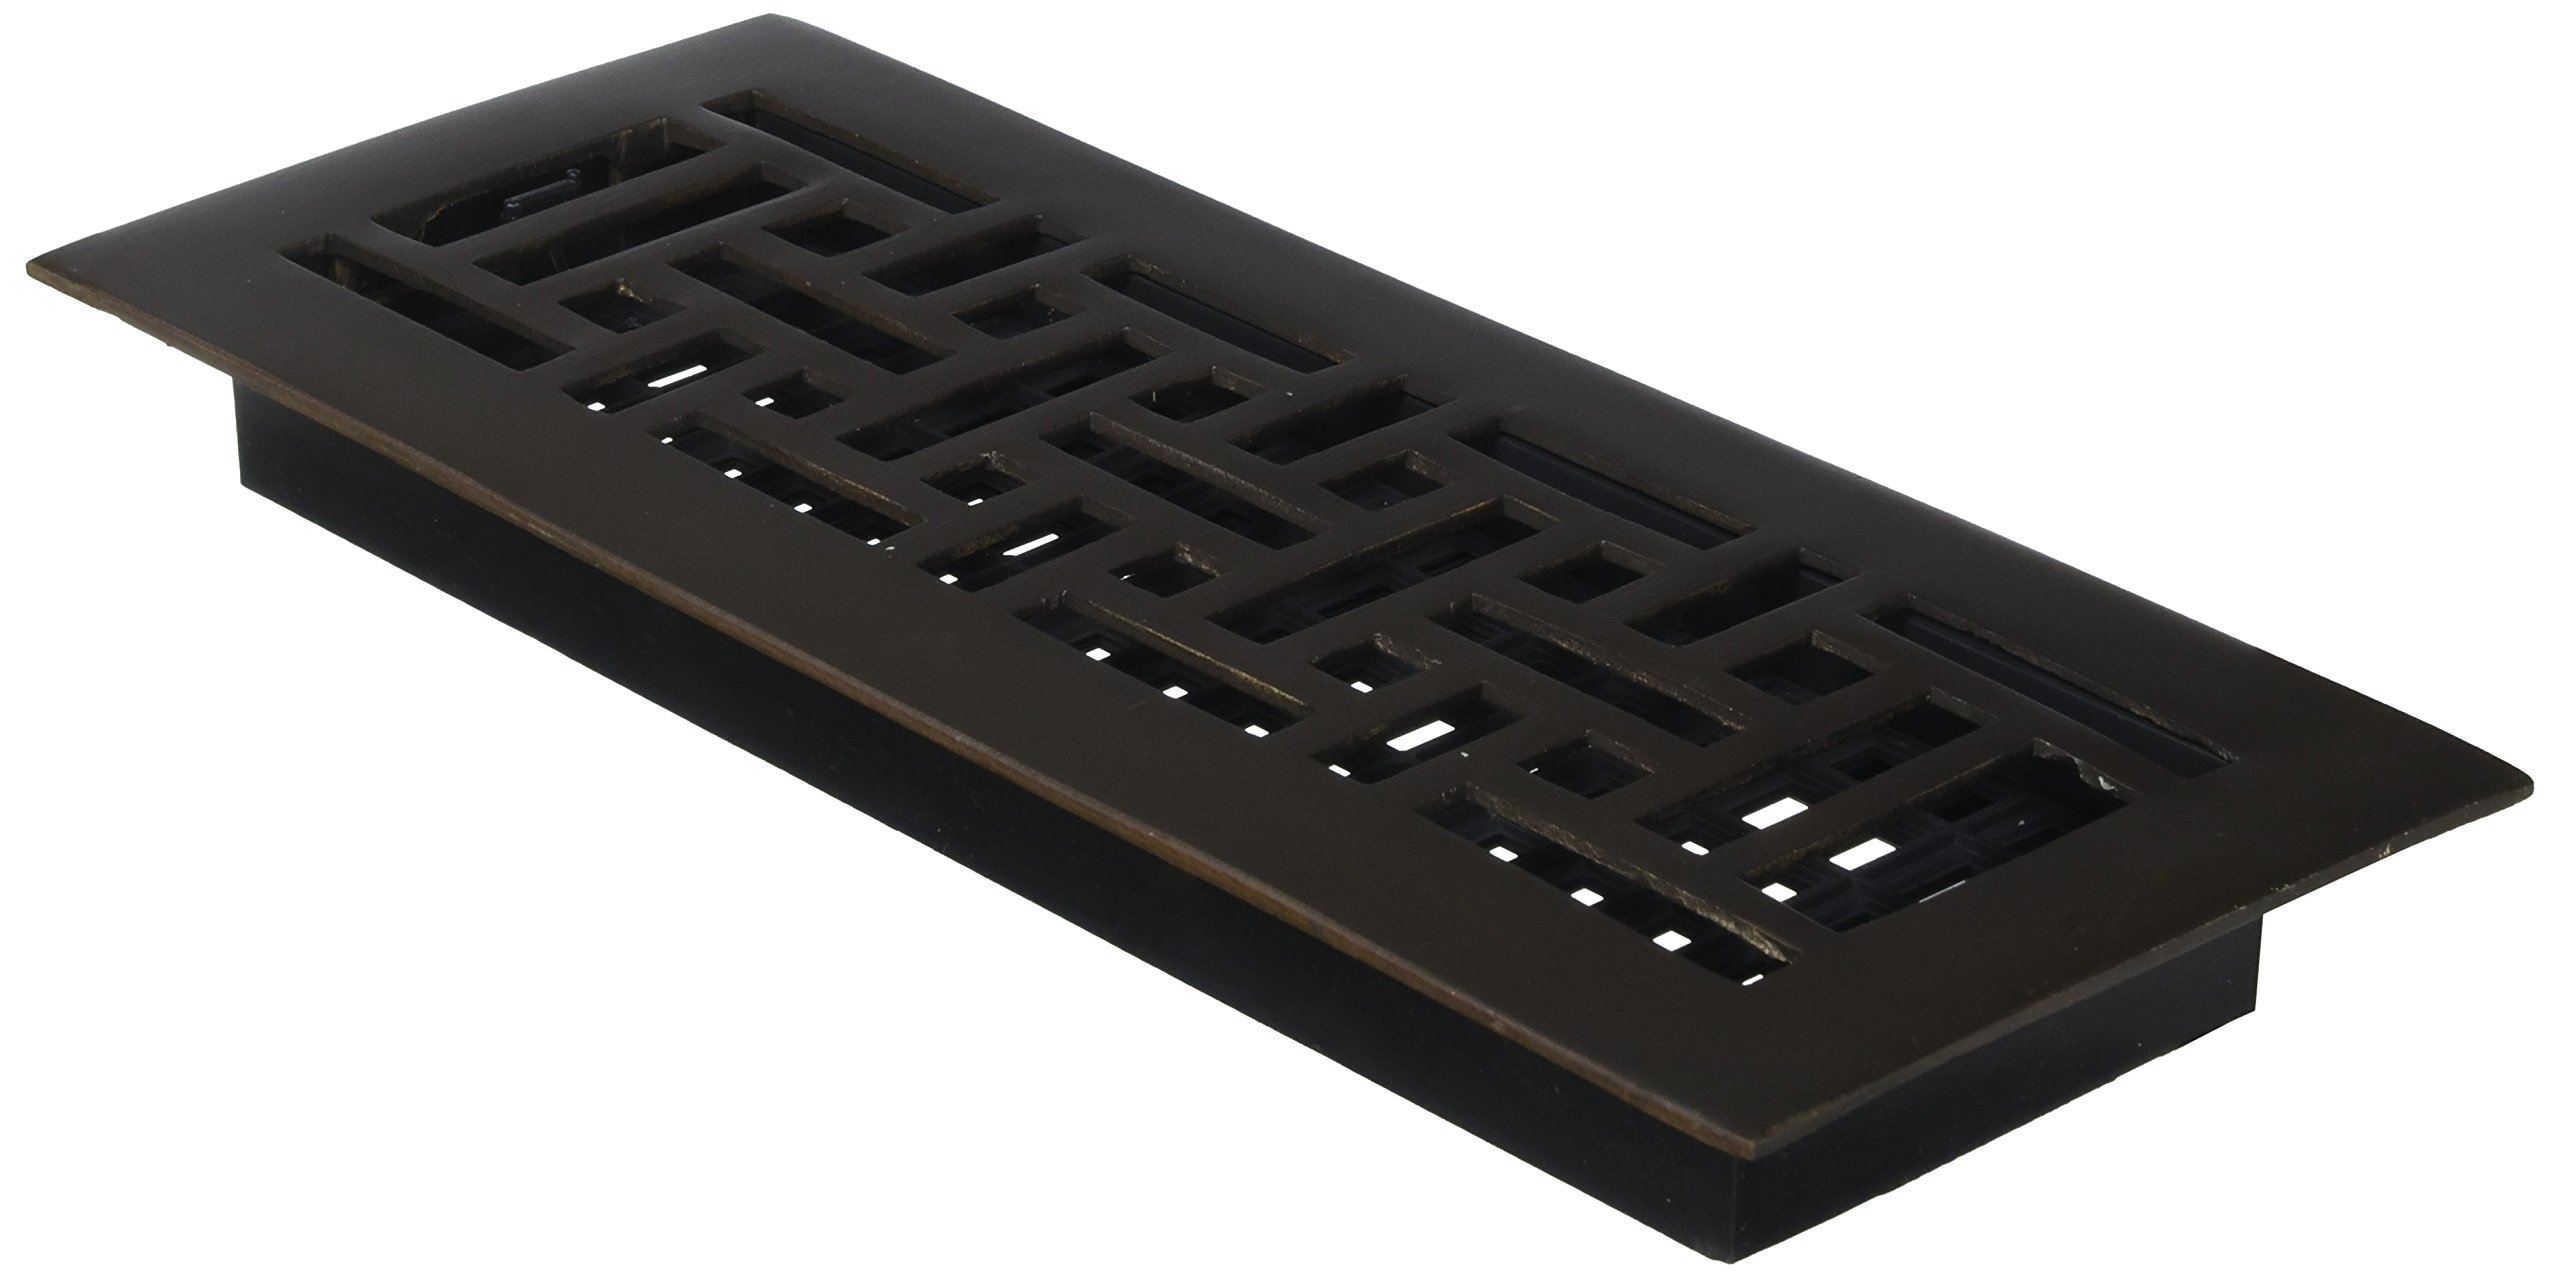 Decor Grates AJ412-RB 4-Inch by 12-Inch Oriental Floor Register, Solid Brass with Rubbed Bronze Finish